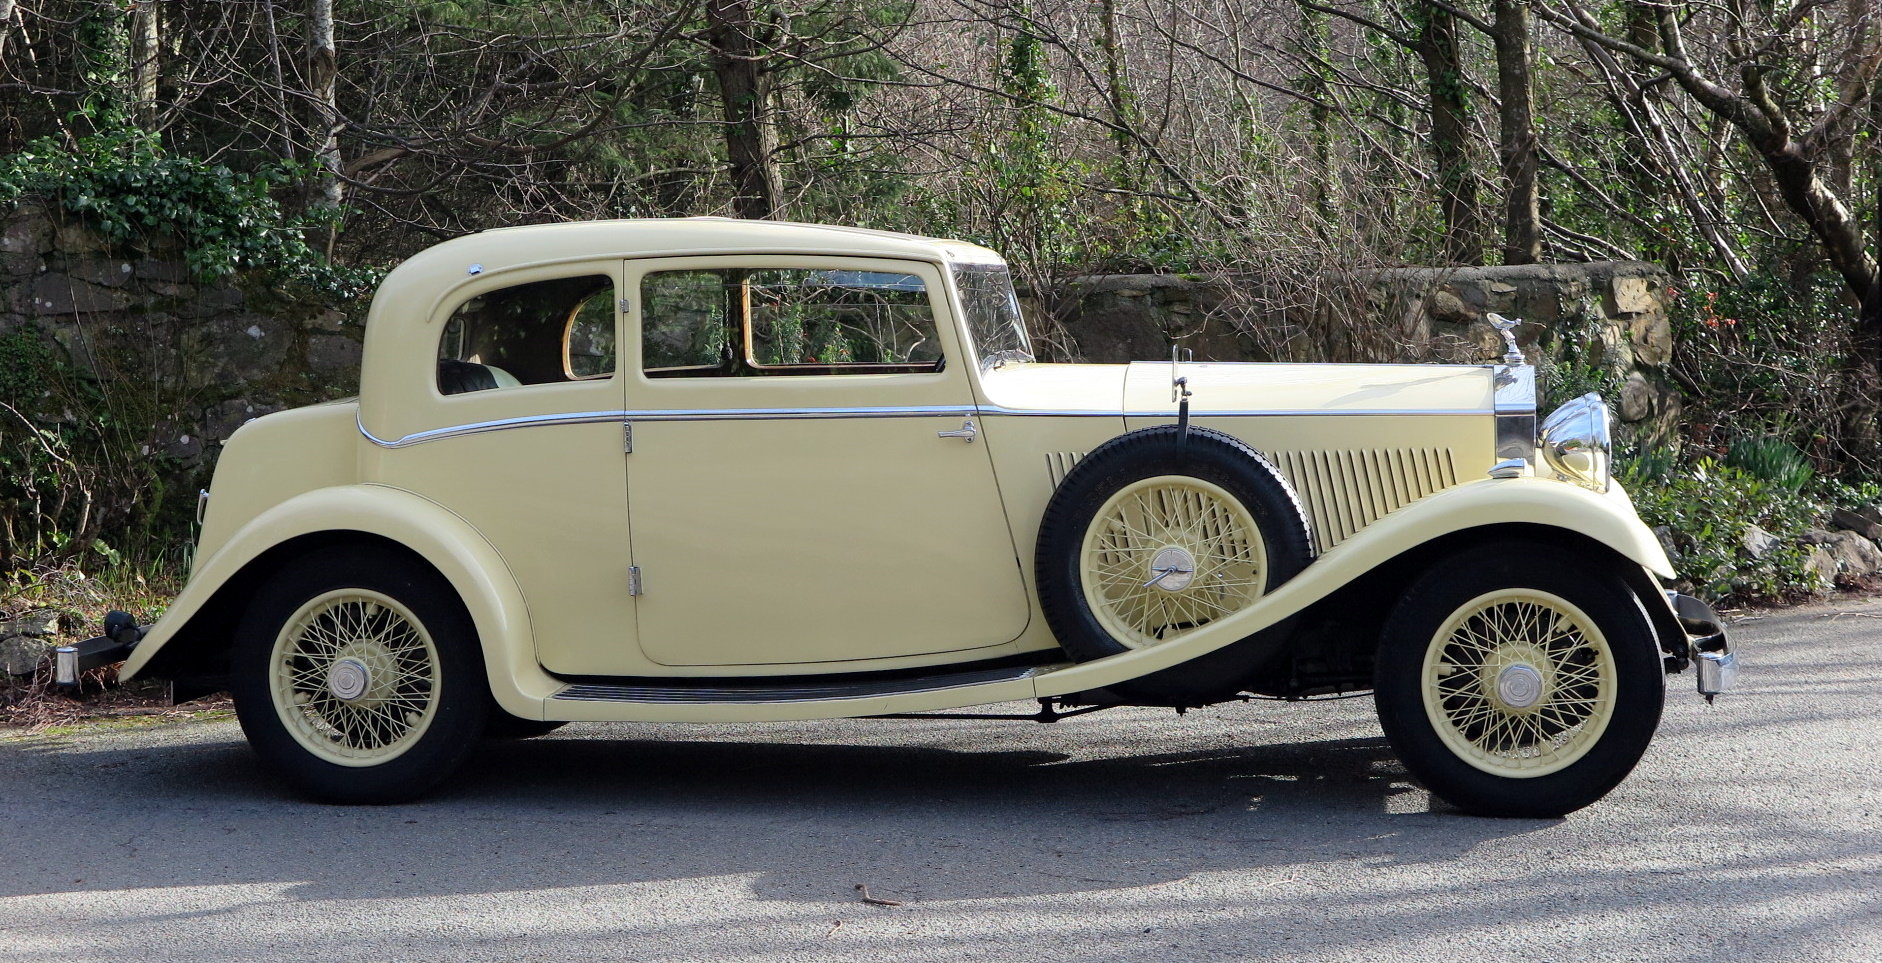 1934 Rolls-Royce 20/25 Lancefield 2 Dr 'Saloon Coupe' GXB26 SOLD (picture 2 of 6)